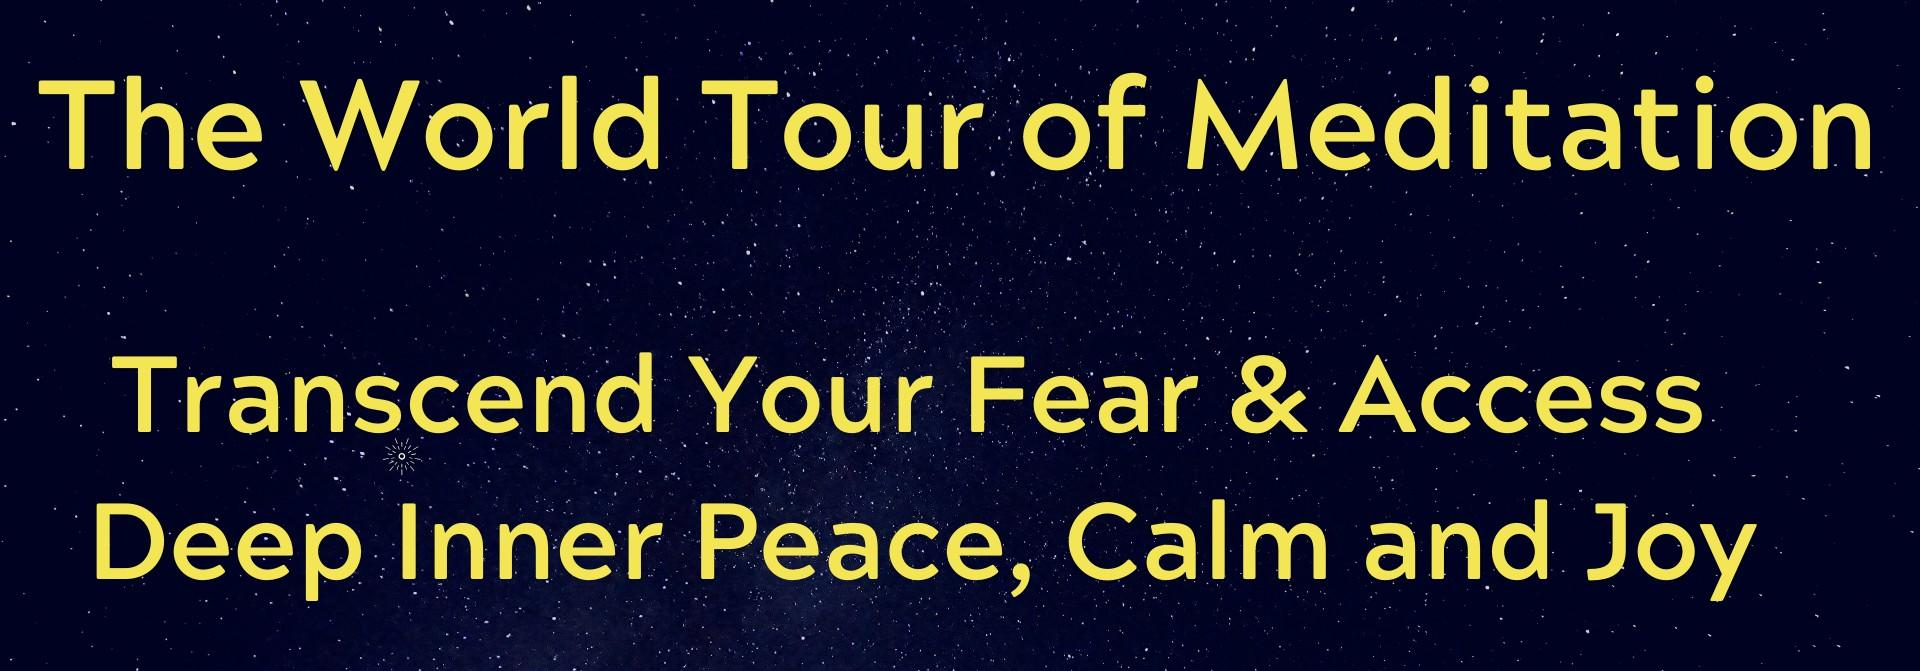 The World Tour of Meditation